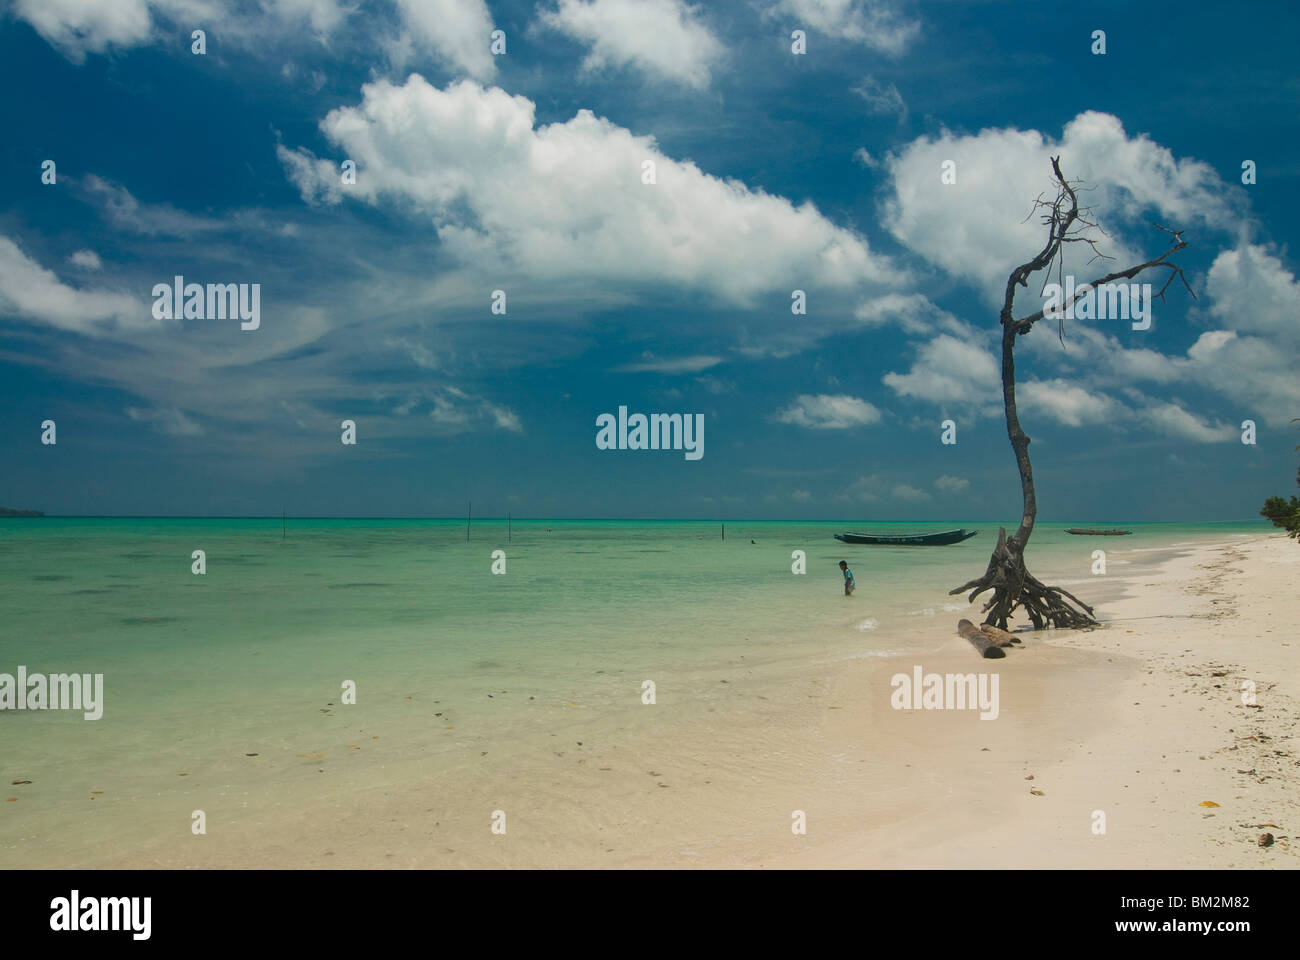 Leafless tree on a beautiful deserted beach, Havelock Island, Andaman Islands, India, Indian Ocean - Stock Image